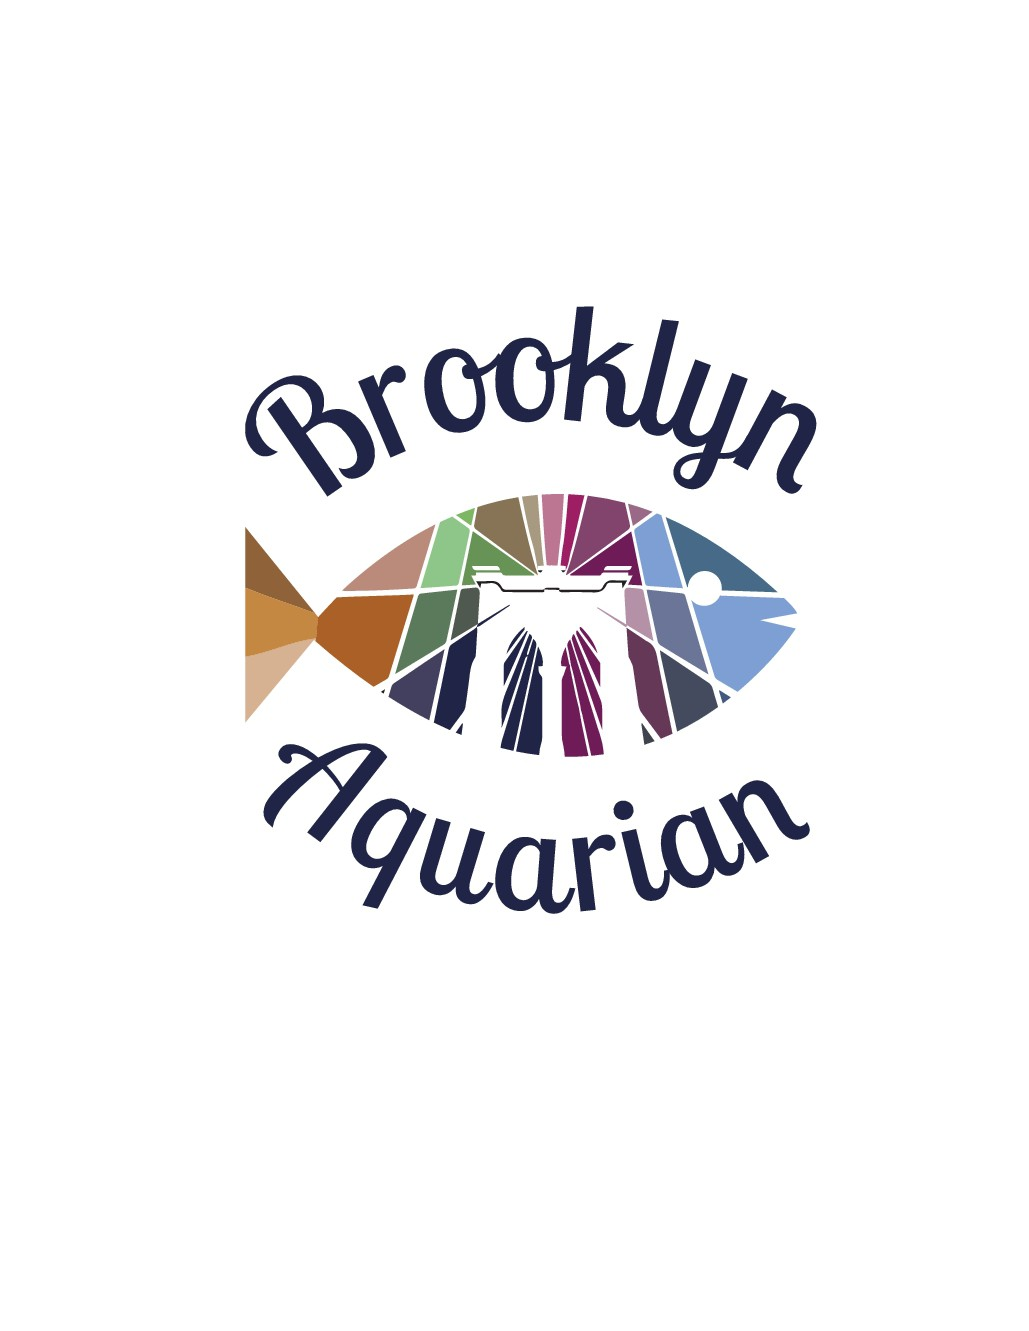 The Brooklyn Aquarian needs your help to hit the big leagues